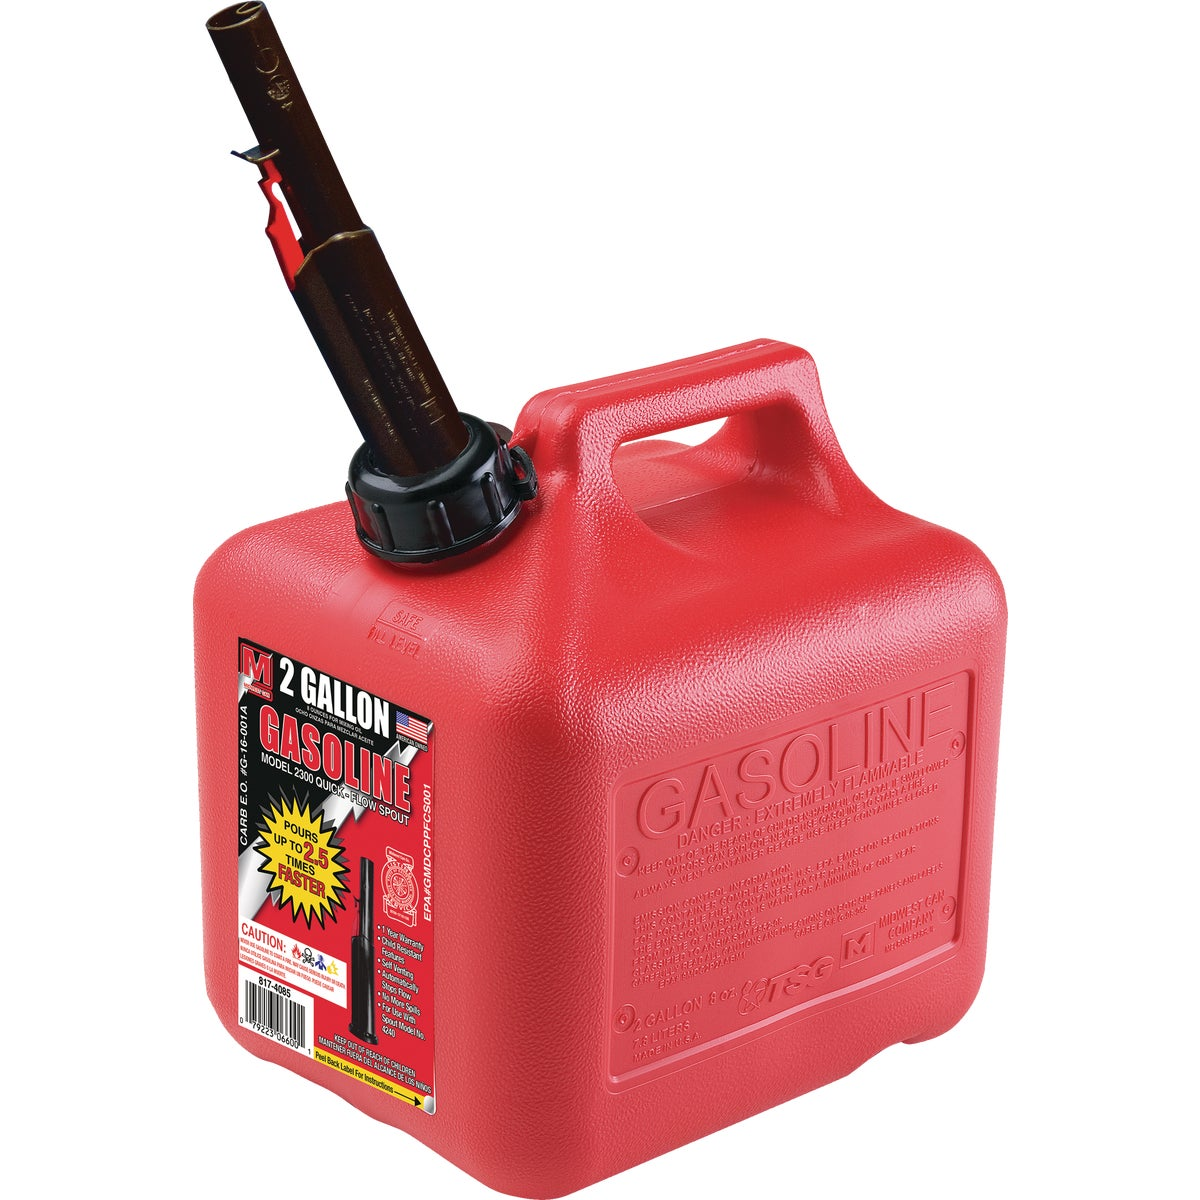 2 GALLON GAS CAN - 2300 by Midwest Can